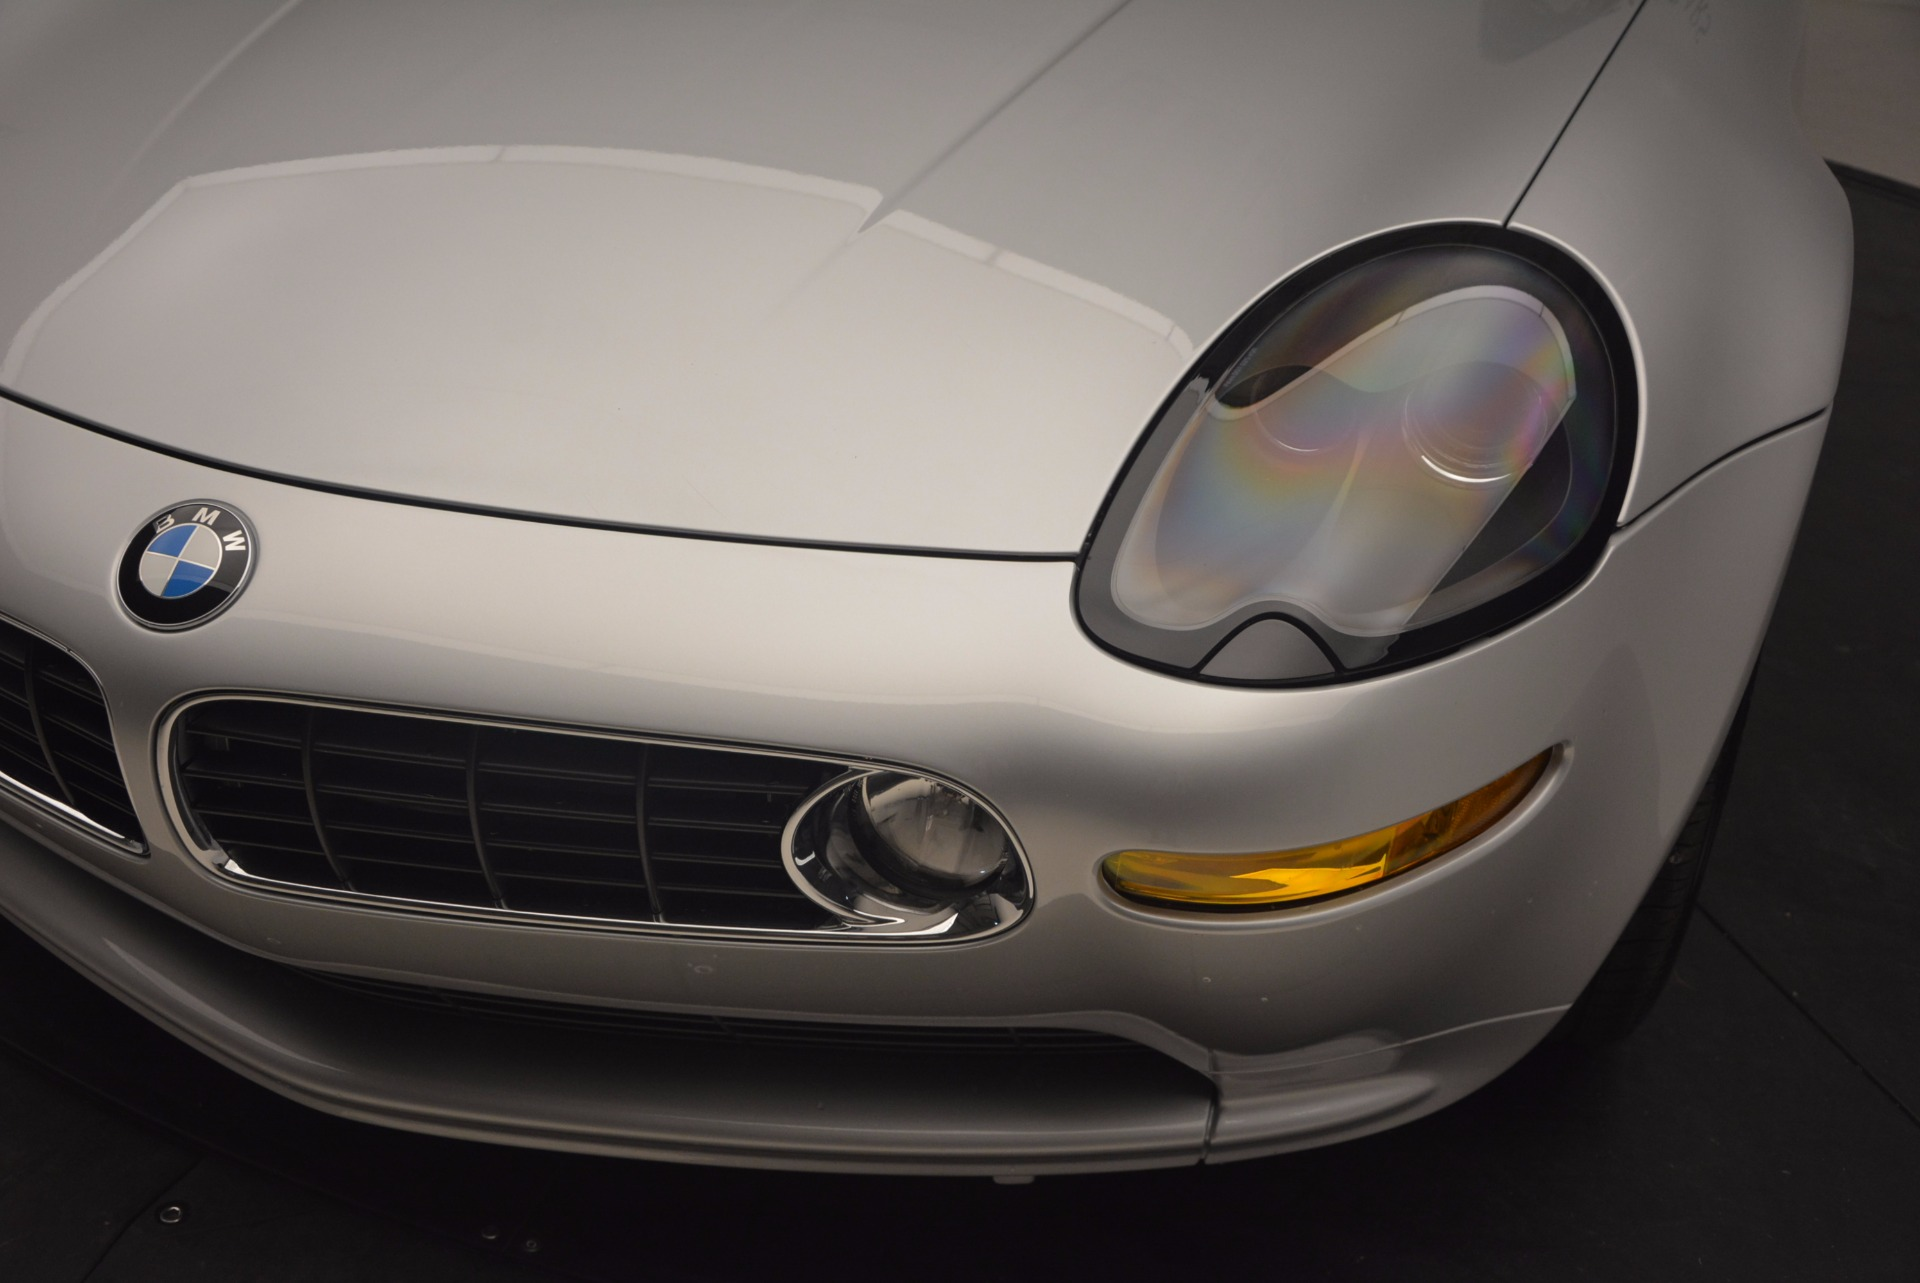 Used 2001 BMW Z8  For Sale In Greenwich, CT 1293_p26